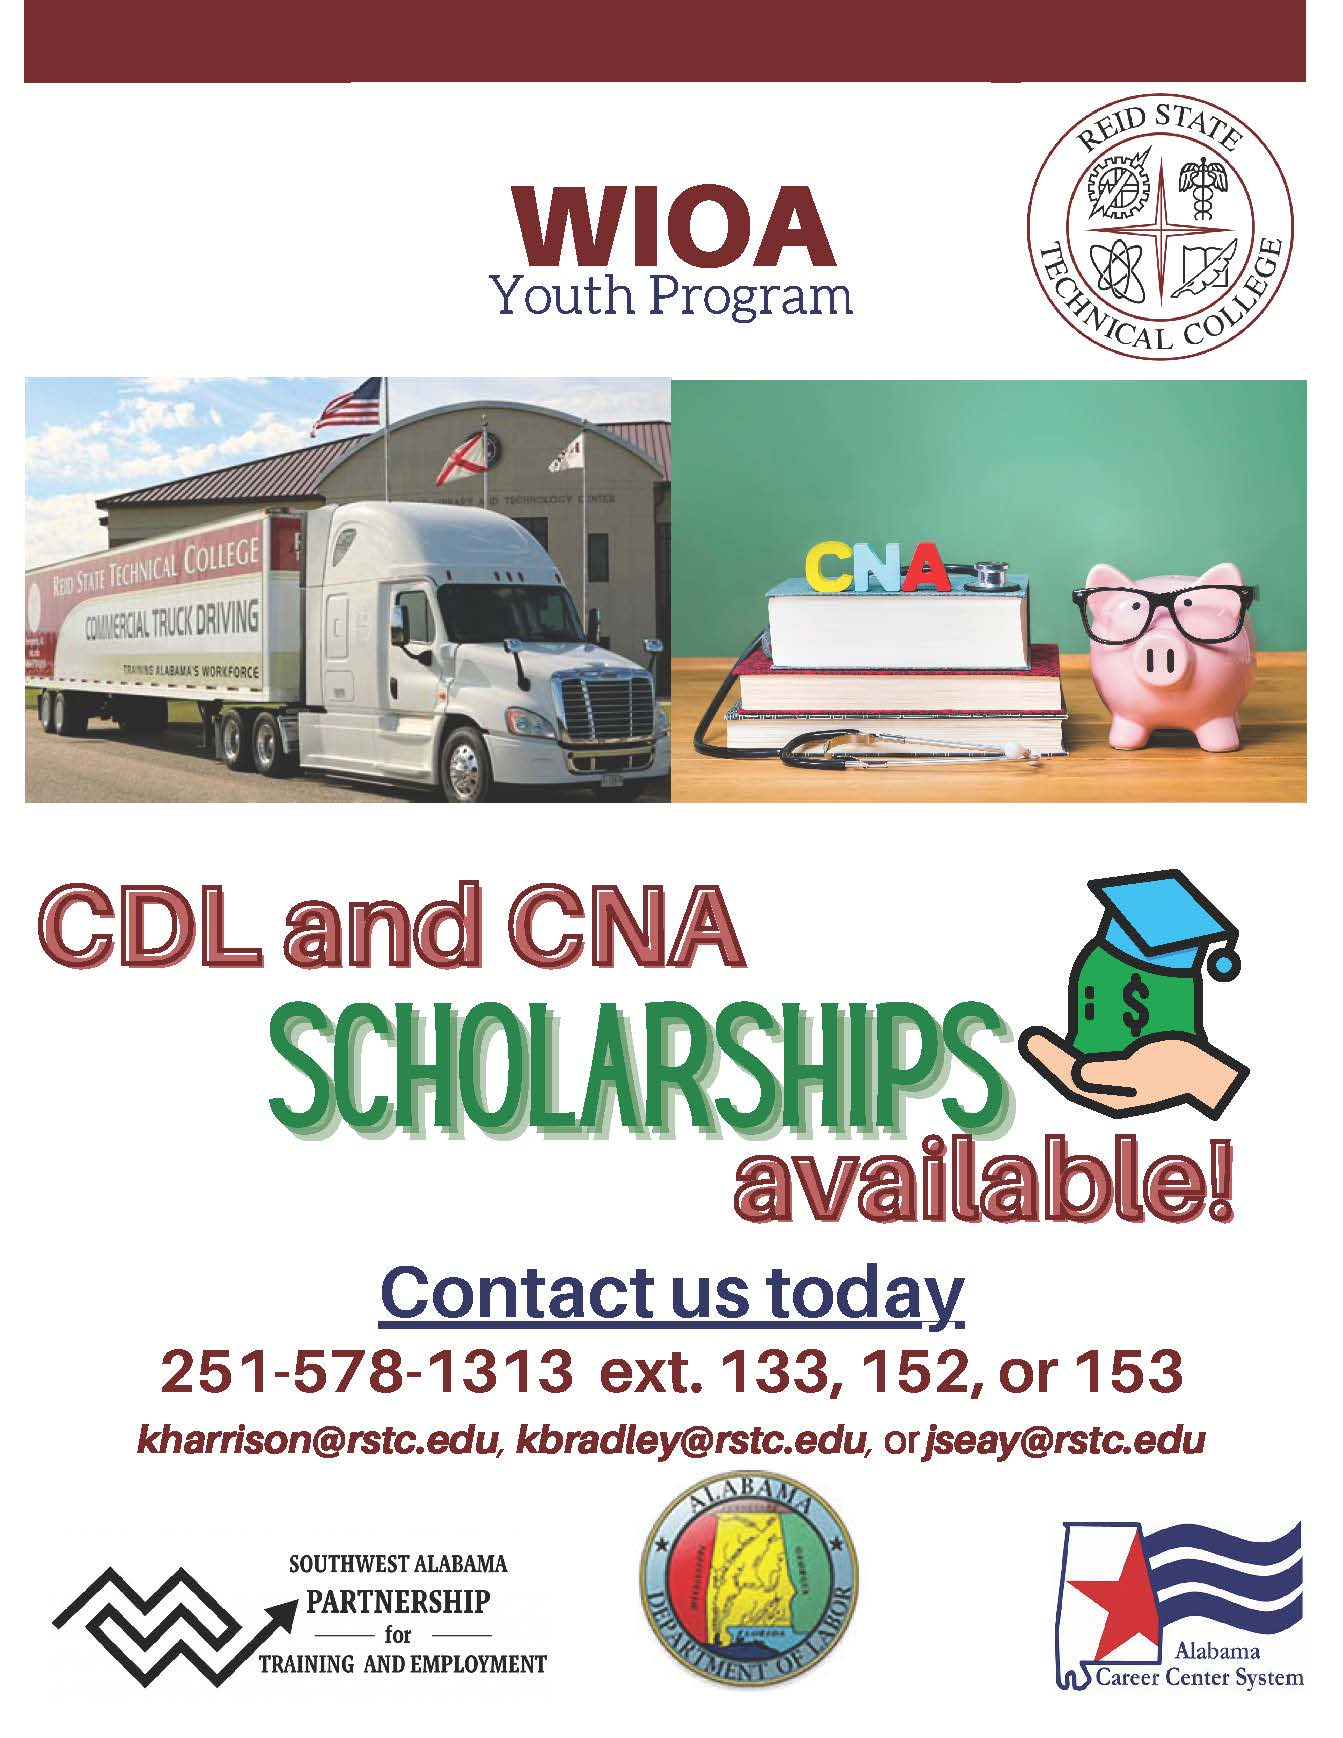 WIOA Scholarships